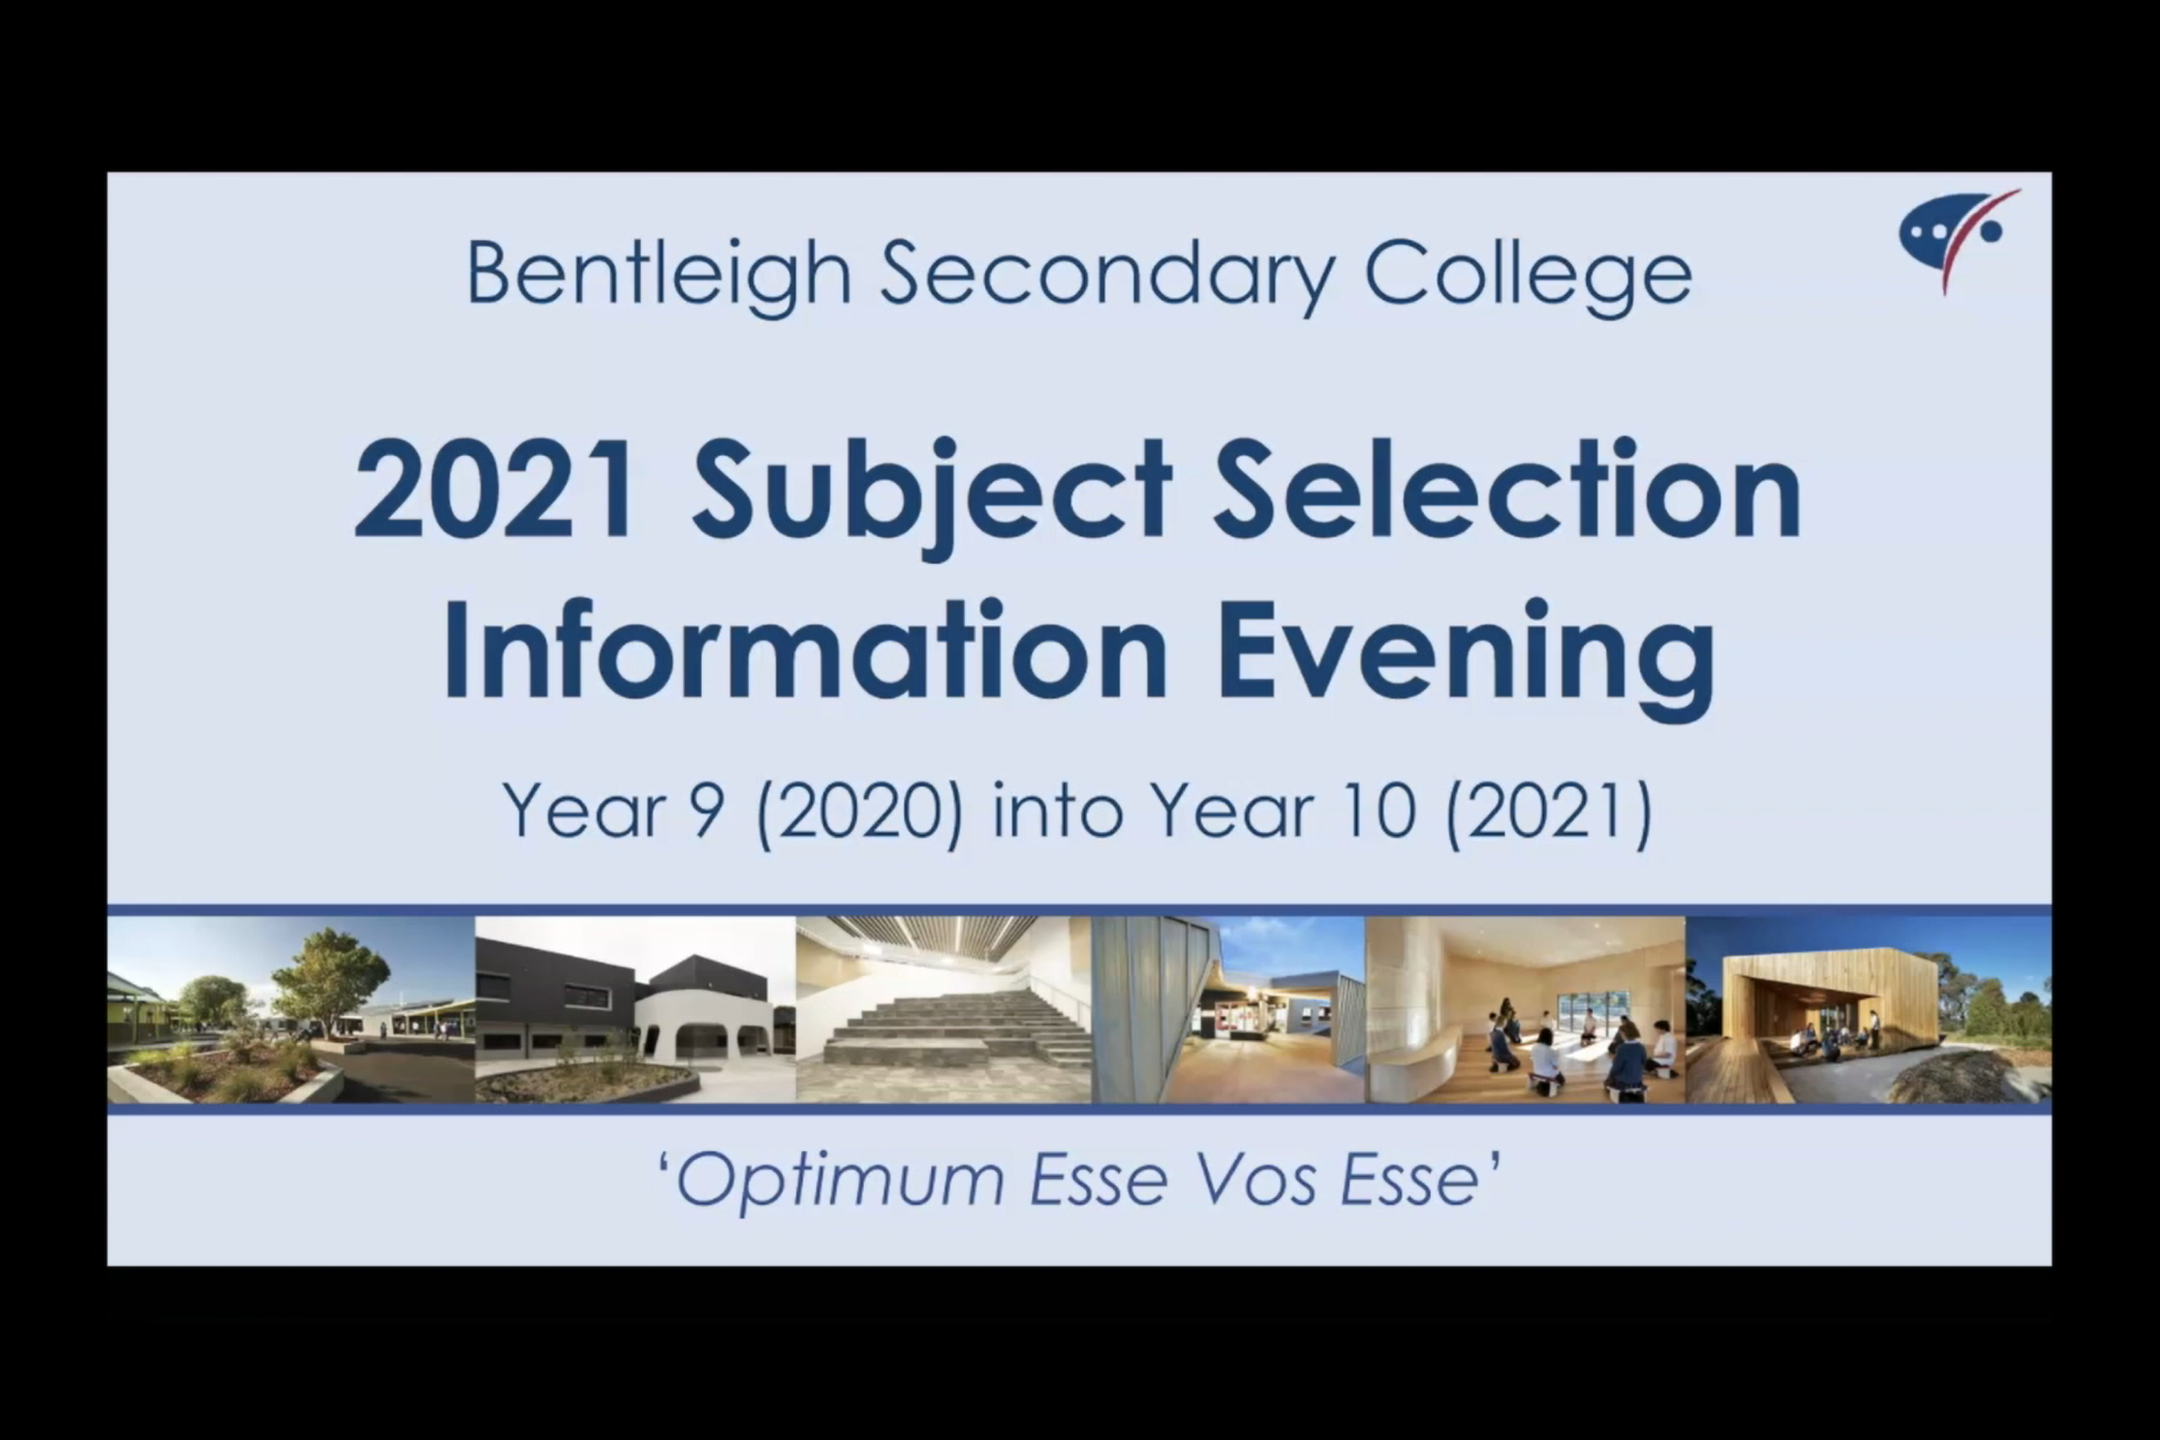 Year 9 inot Year 10 Information Evening